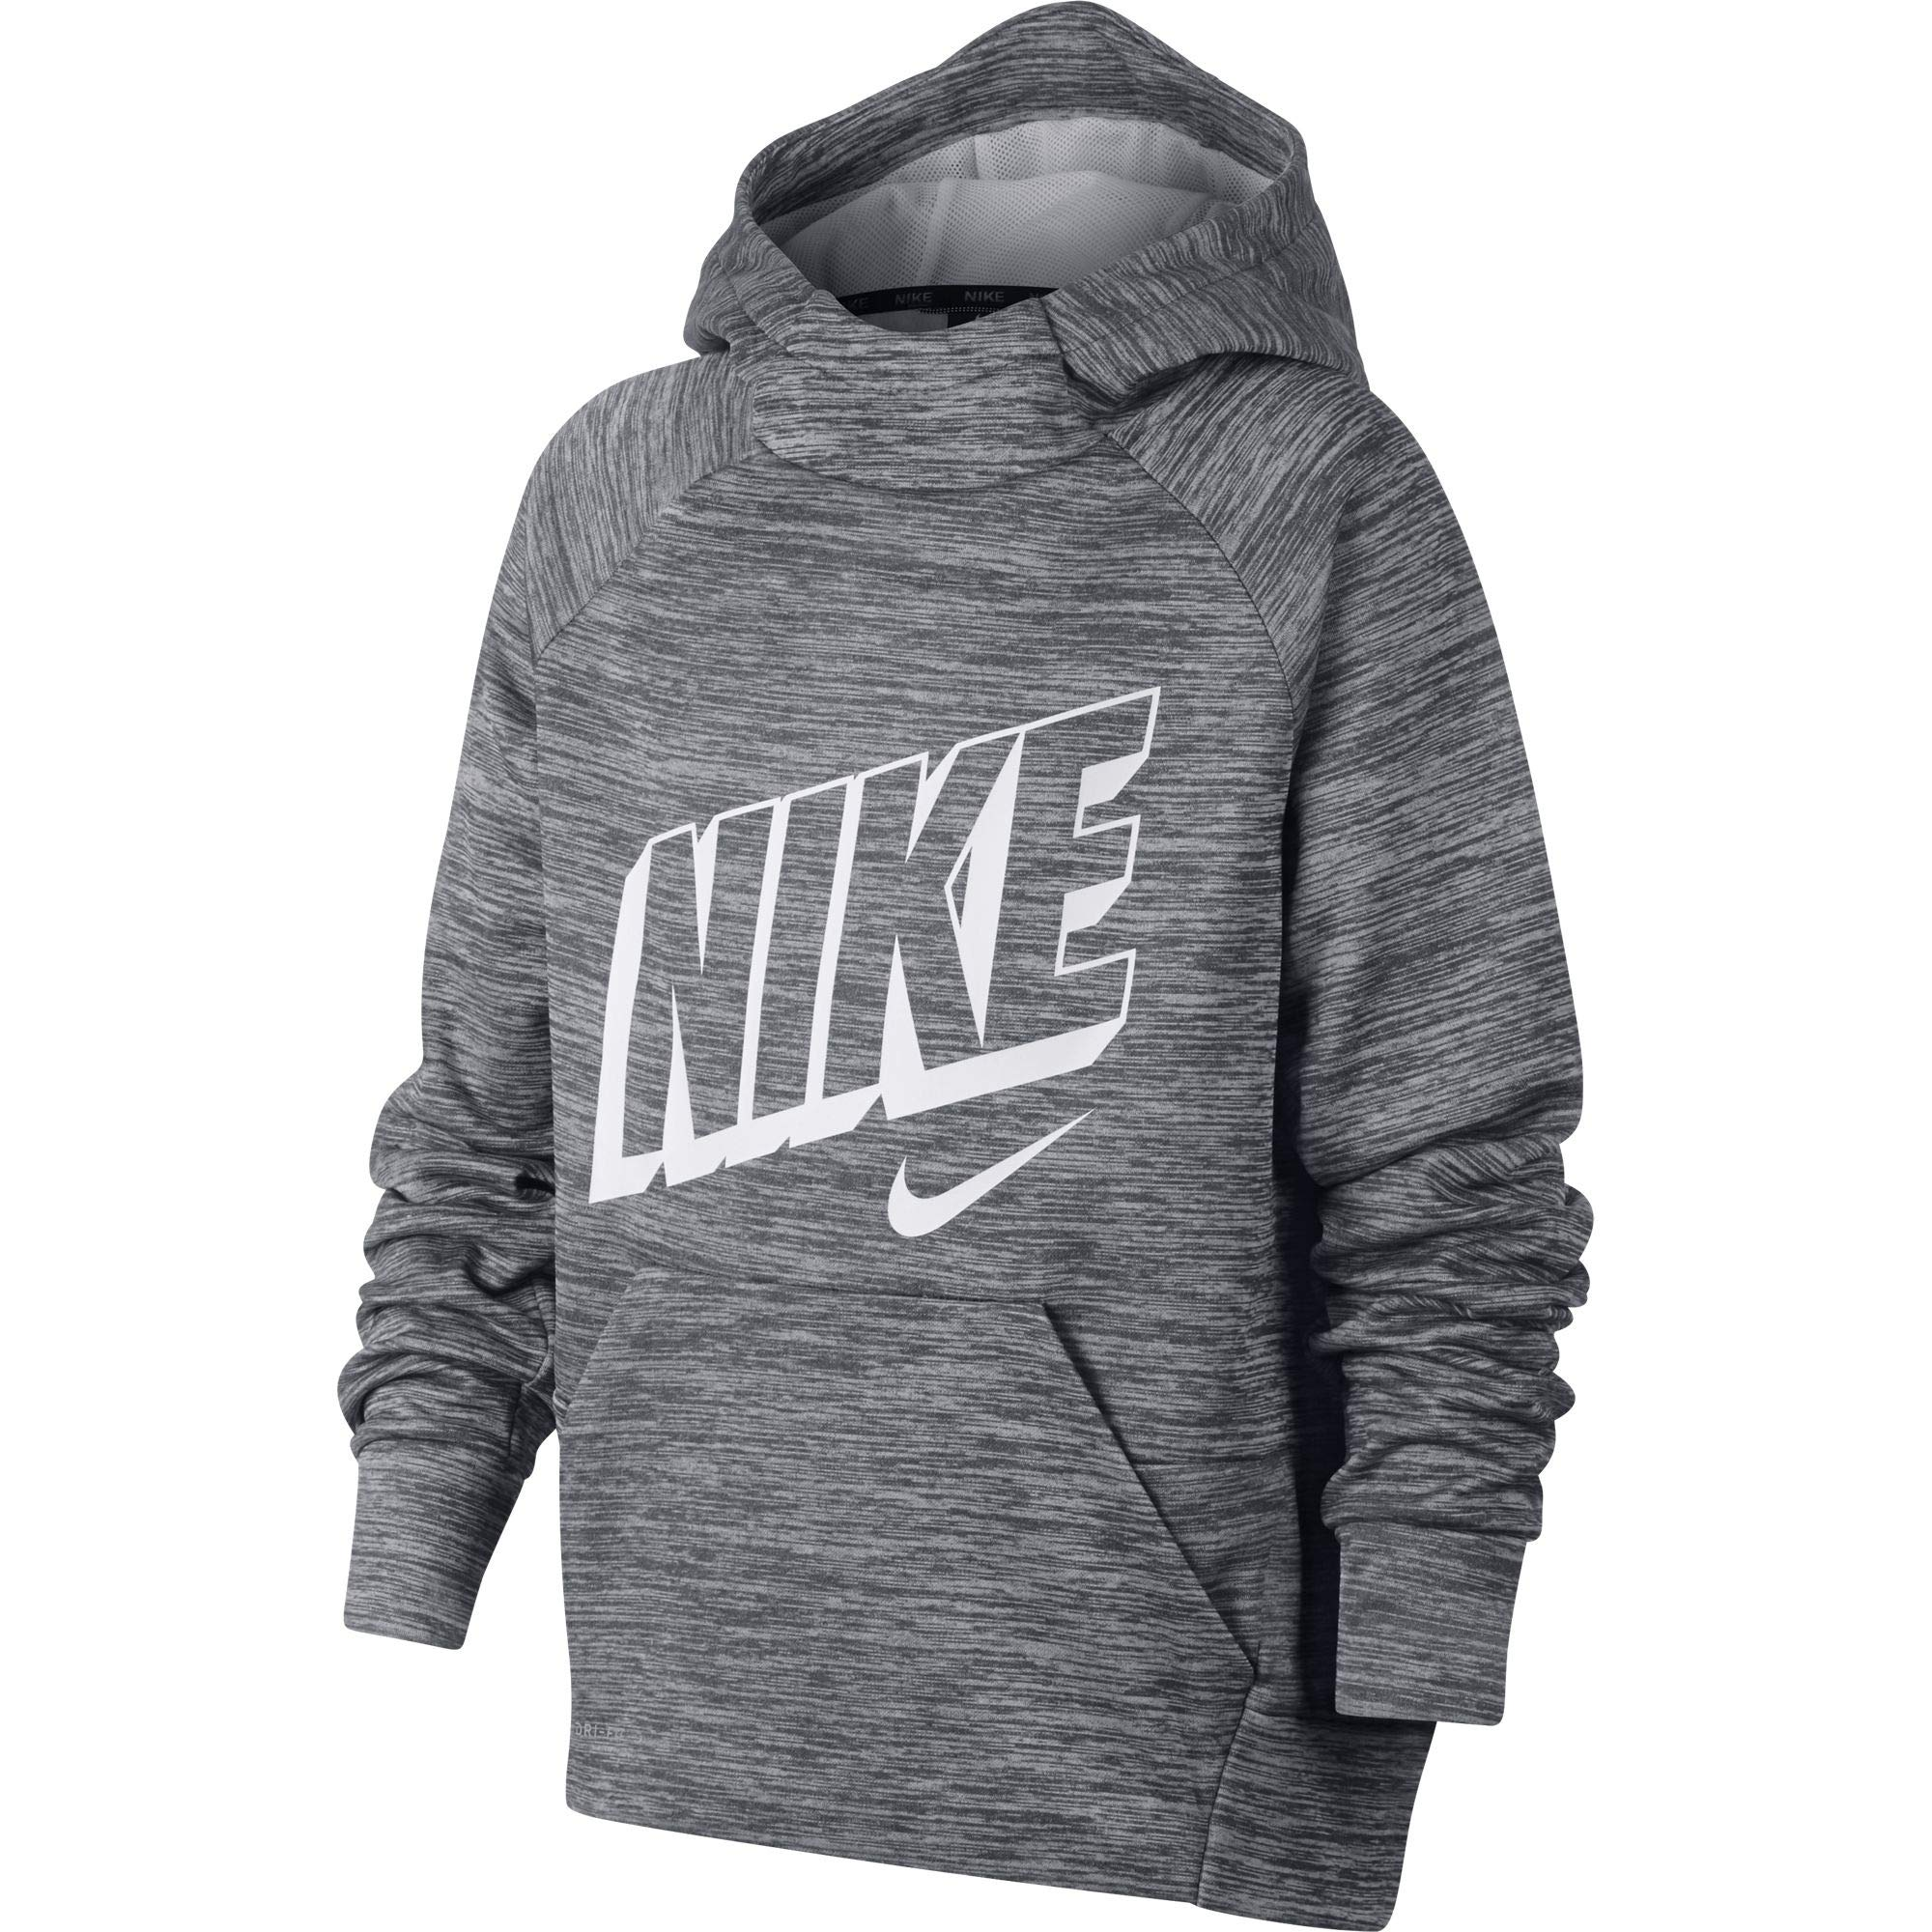 Nike Boy's Therma Graphic Training Pullover Hoodie Dark Grey/Pure/White Size Large